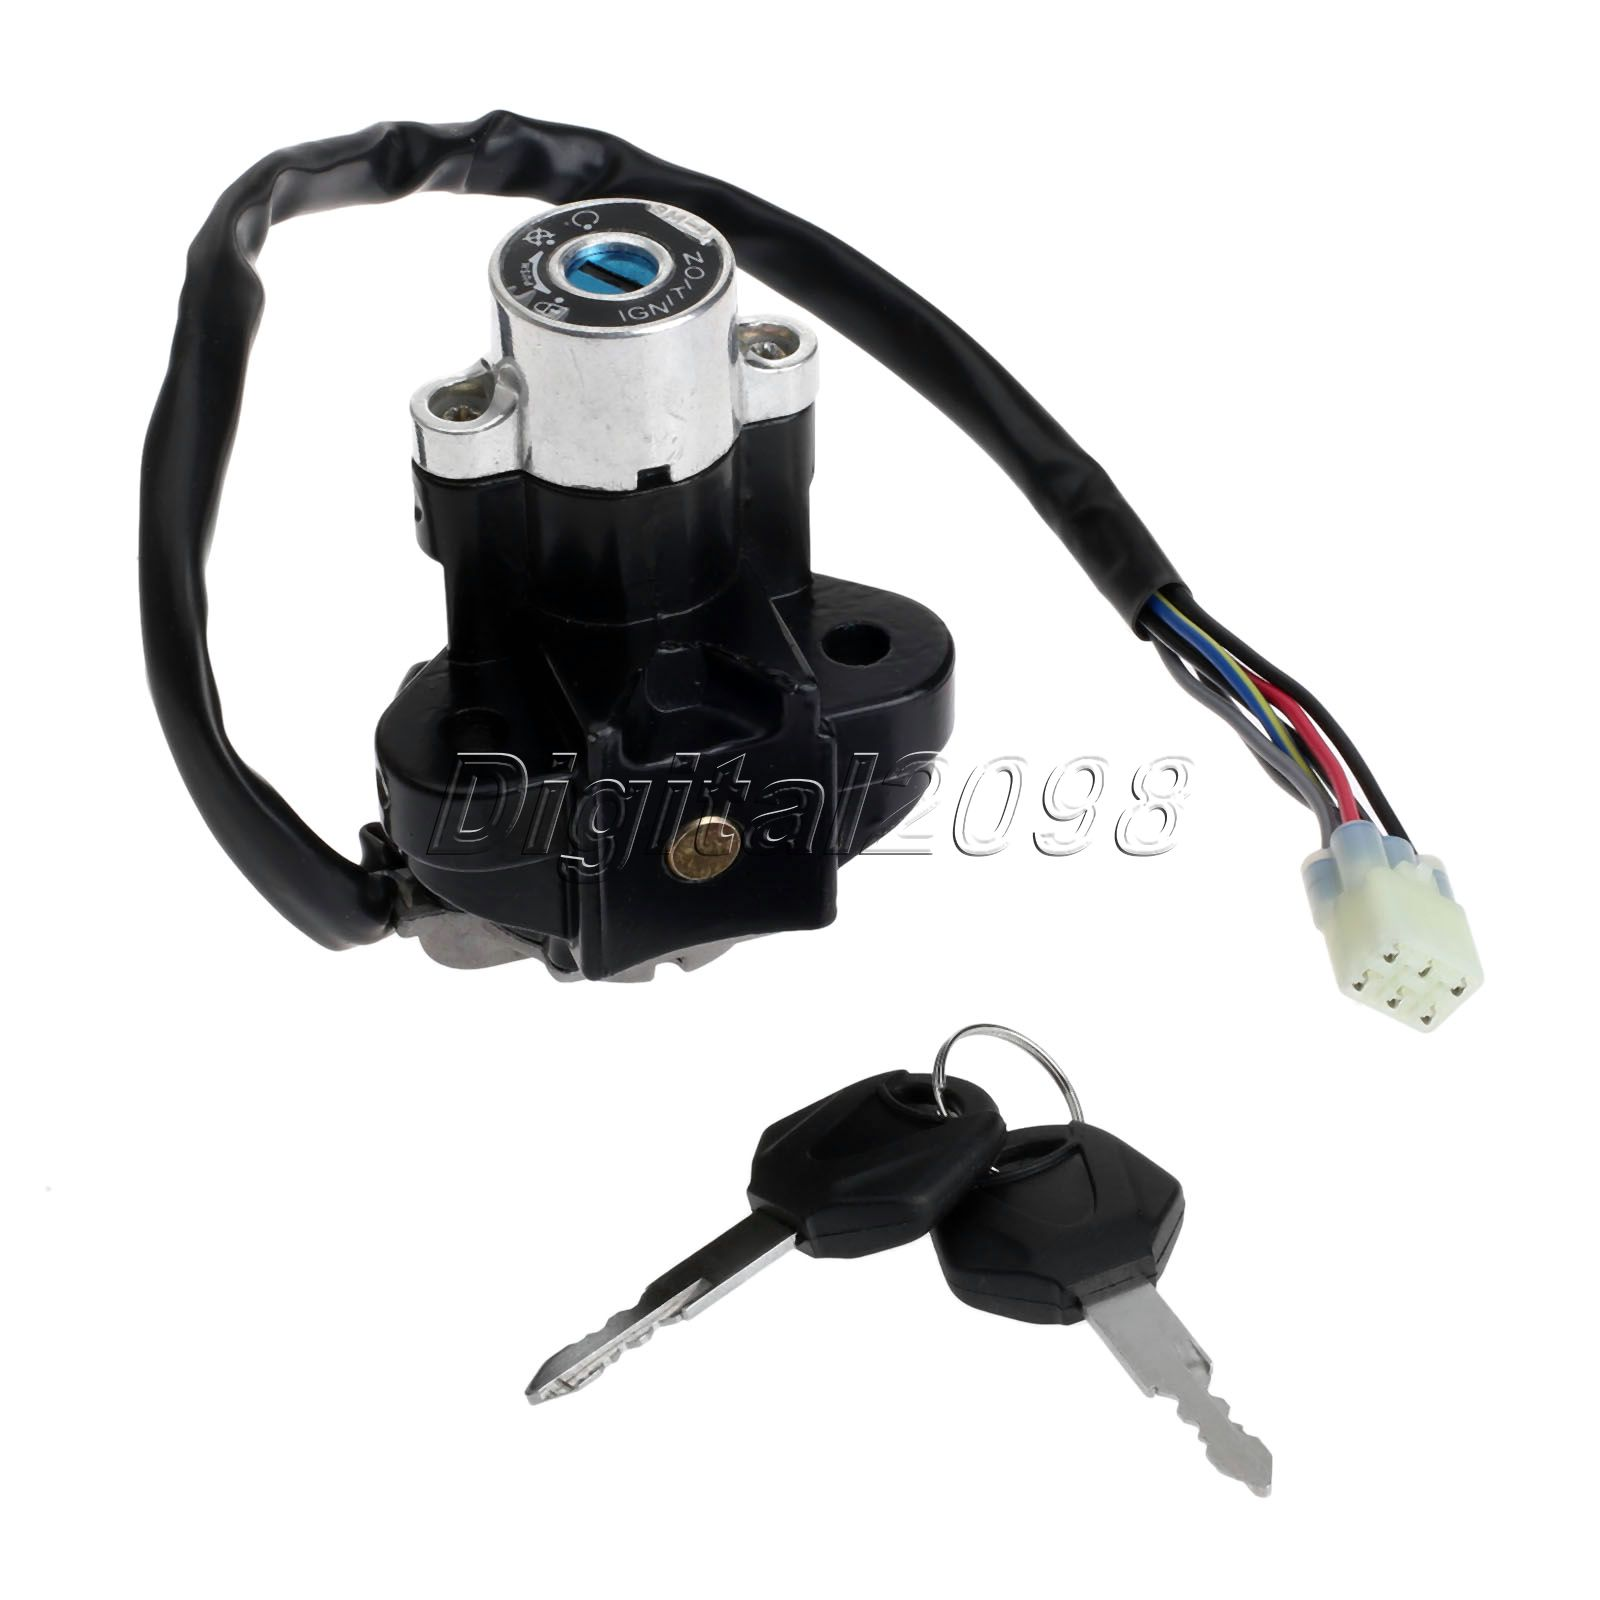 Aluminum Motorcycle Ignition SwitchPitbike Scooter Motorbike Parts cdi Lock with Keys for Suzuki GSXR 600 750 GSX-R600 GSX-R750(China (Mainland))